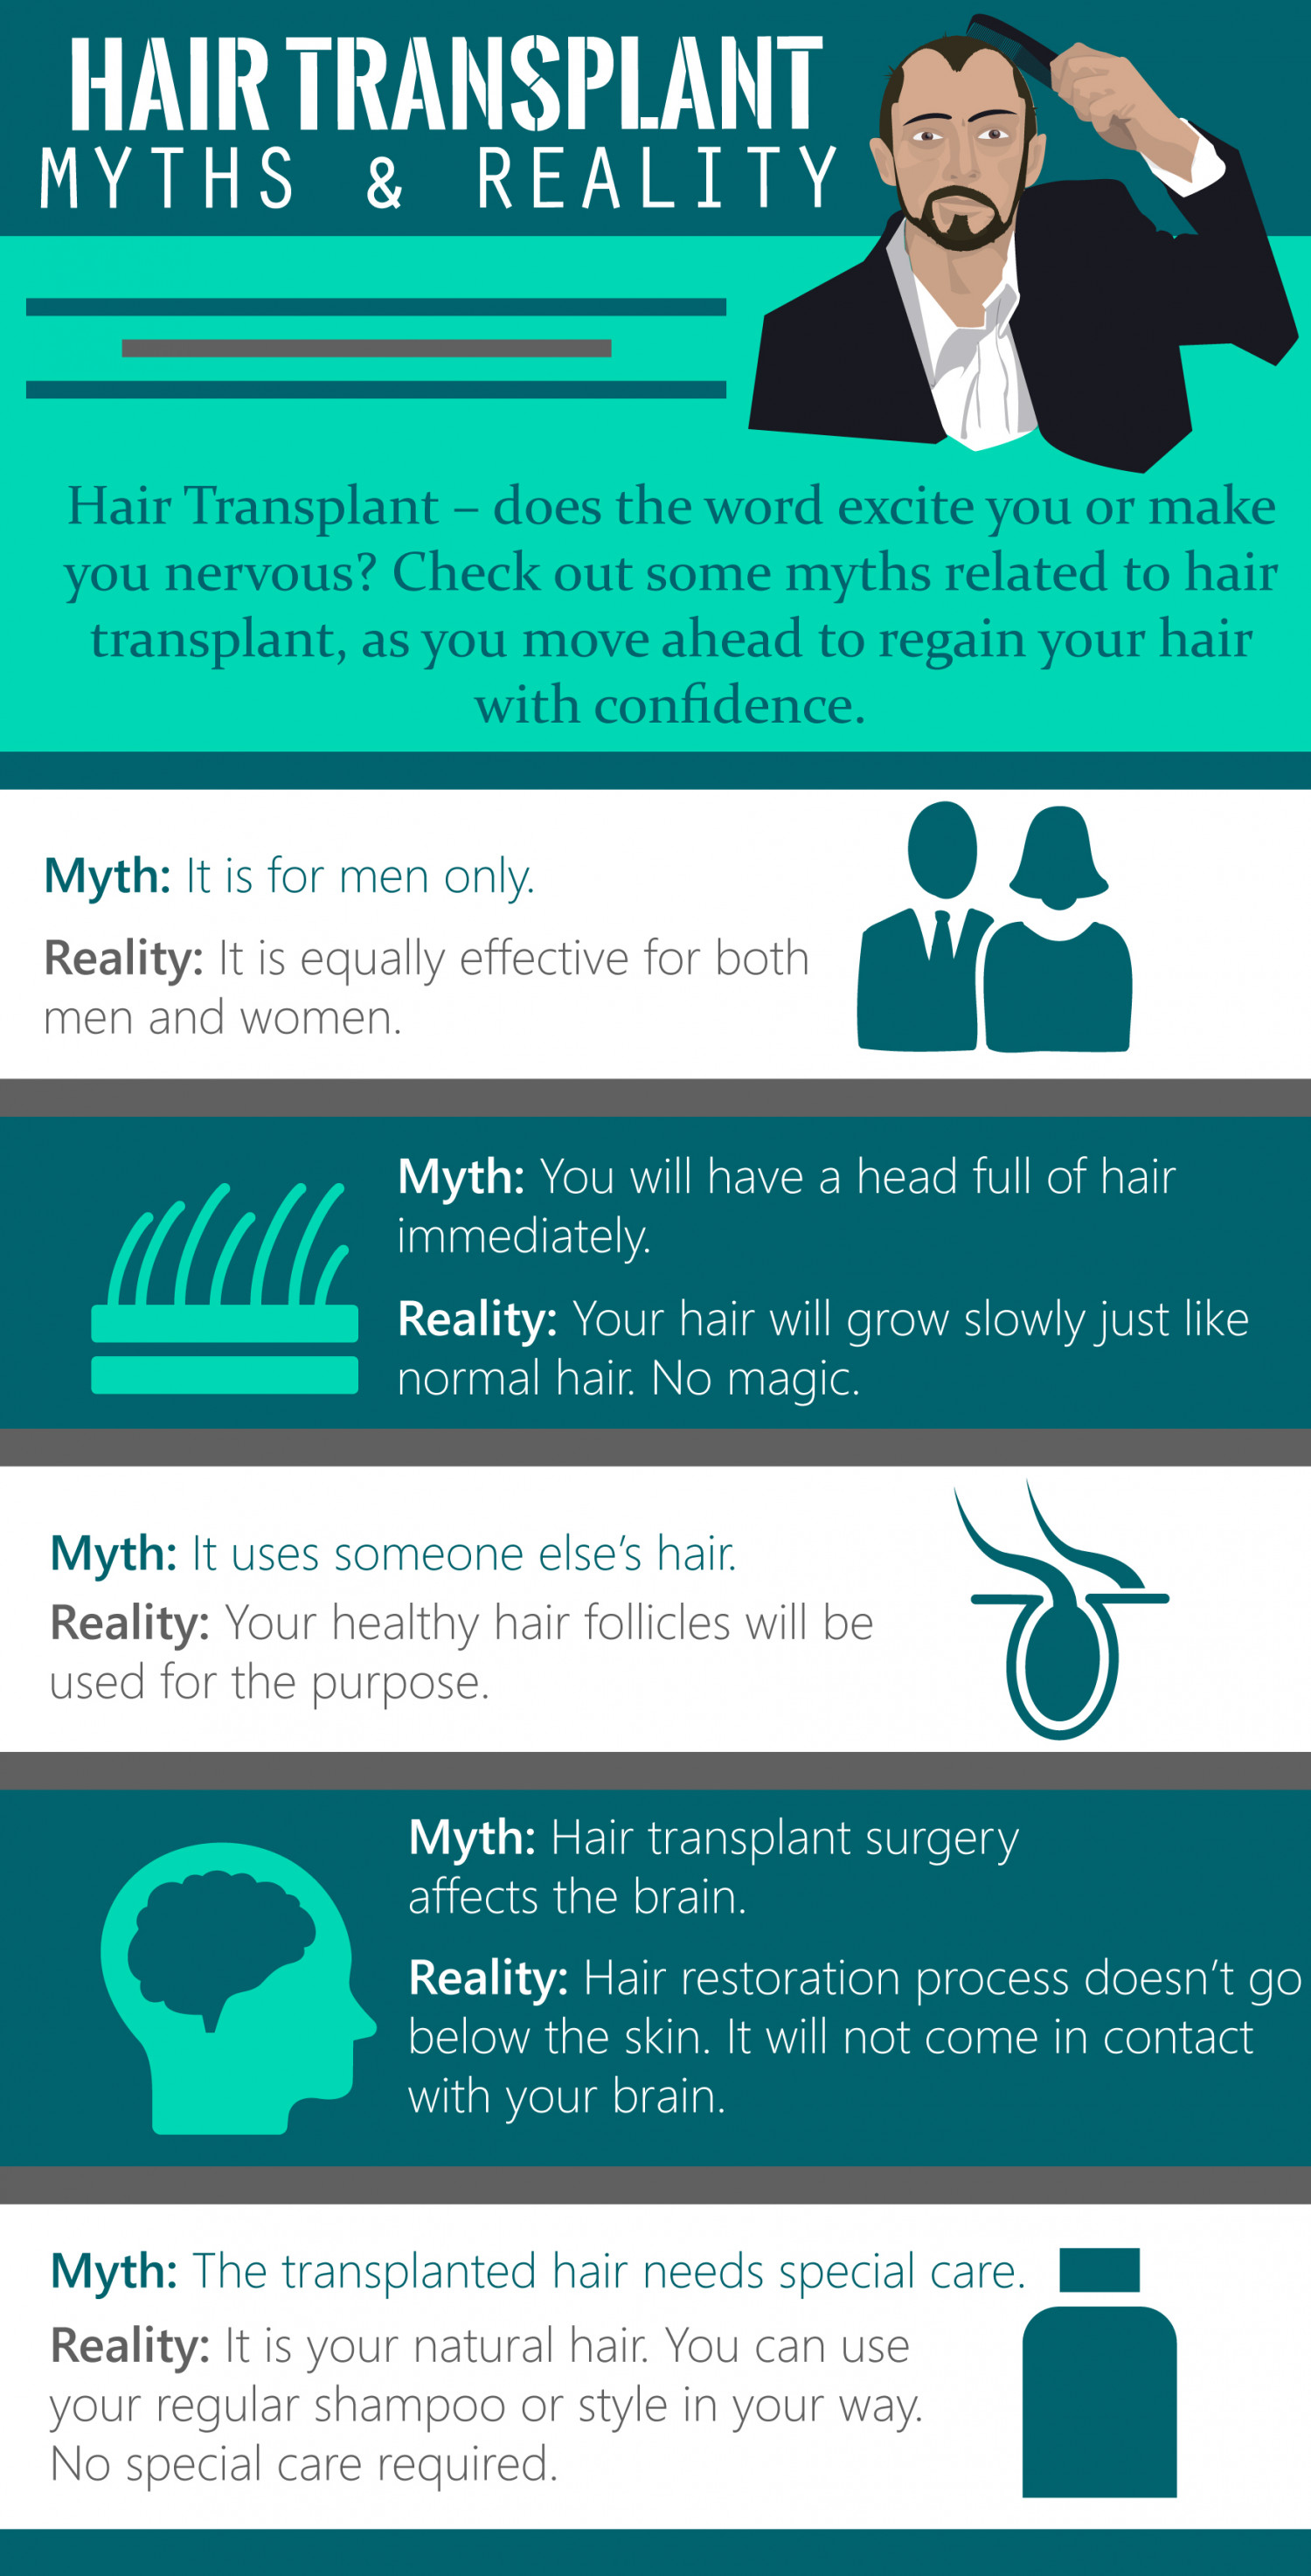 Common Hair Transplant Myths